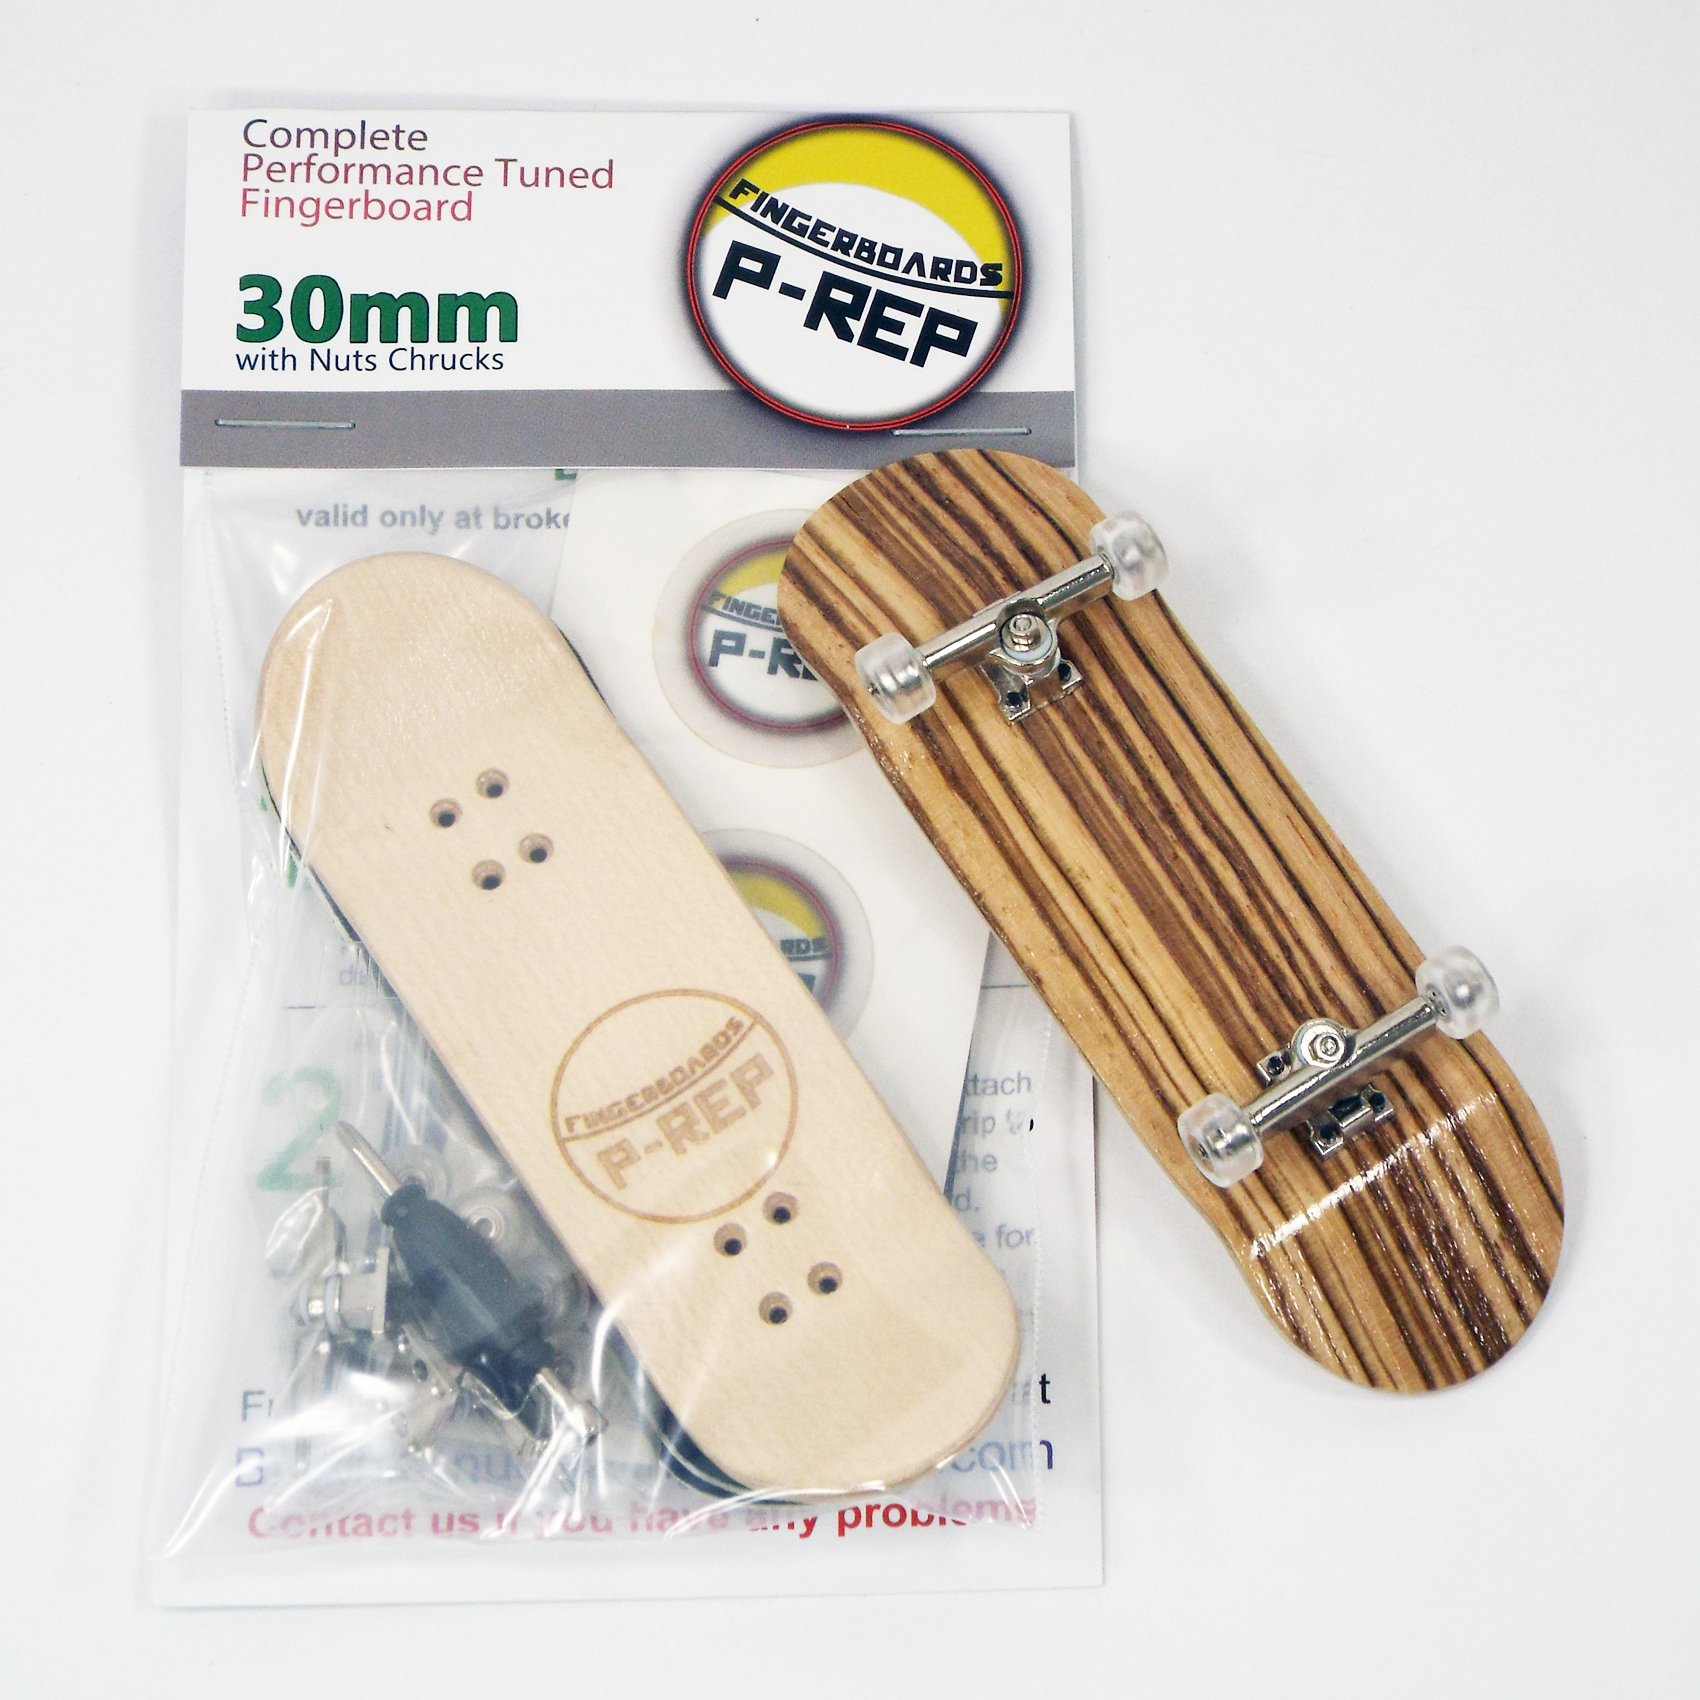 Peoples Republic P-REP 30mm Basic Complete Fingerboard Kit with Liquid Hardware - Zebra by Peoples Republic (Image #3)